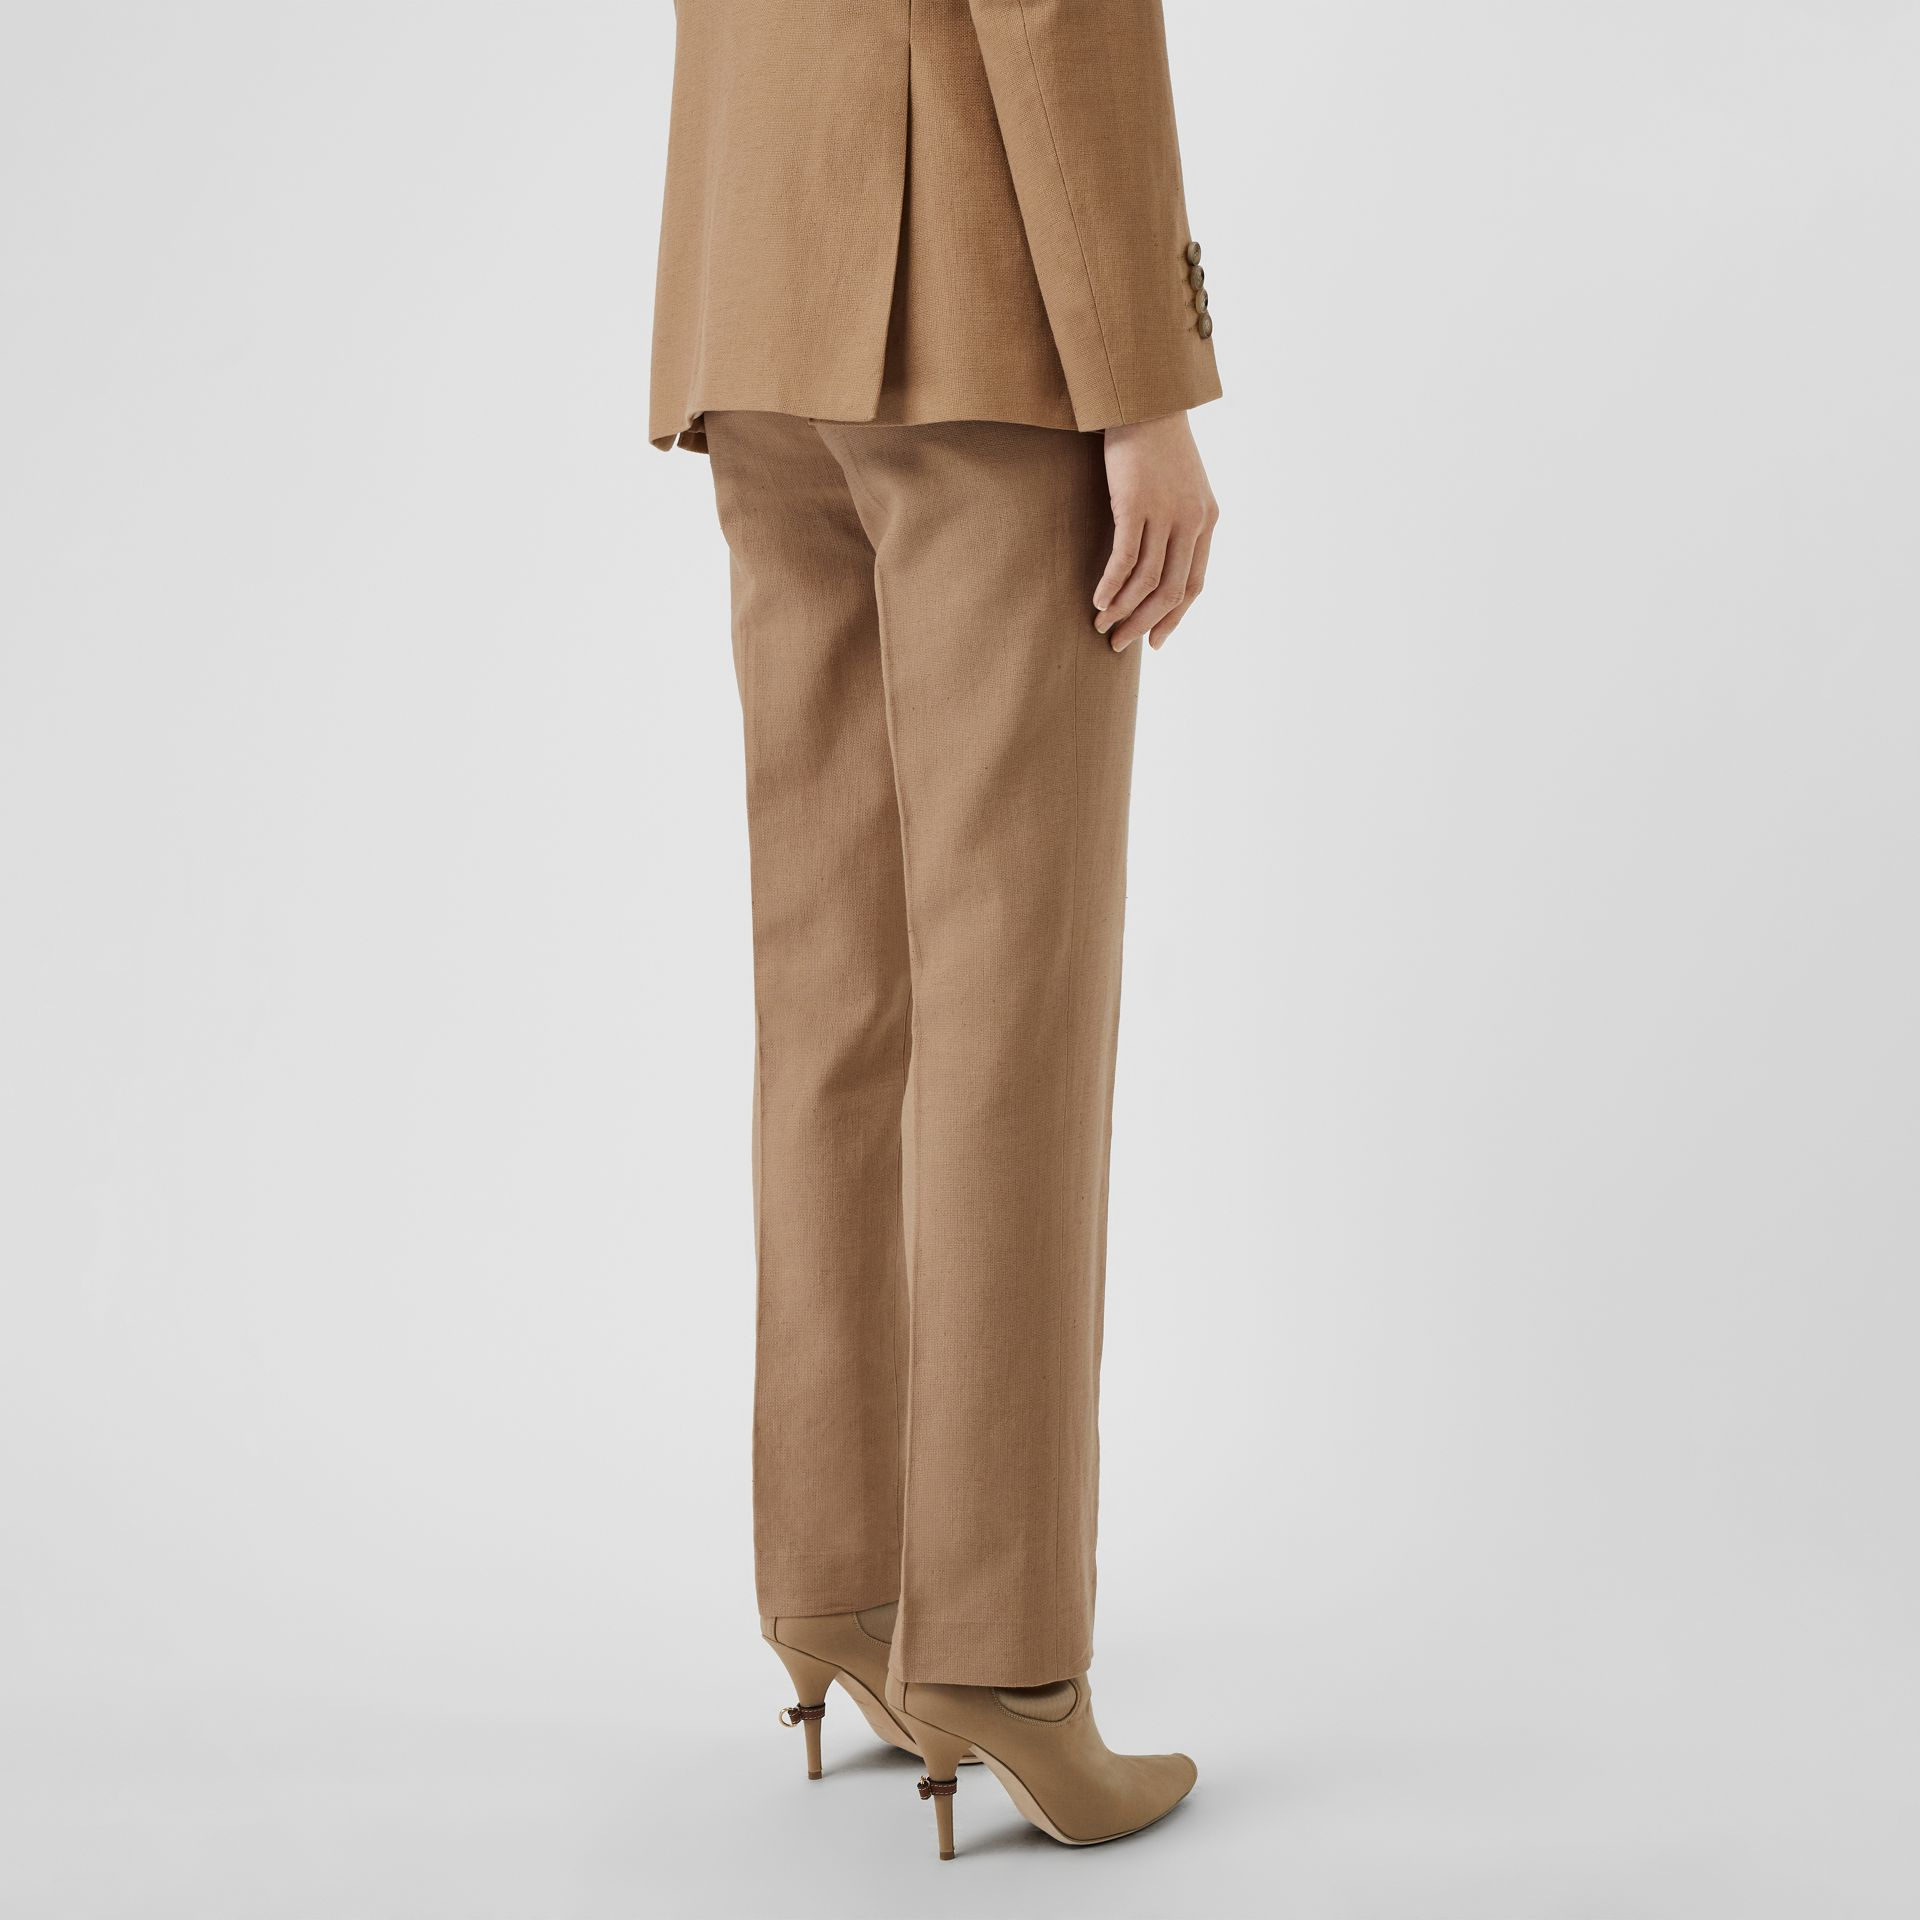 Cotton Linen Tailored Trousers in Ceramic Brown - Women | Burberry - gallery image 2